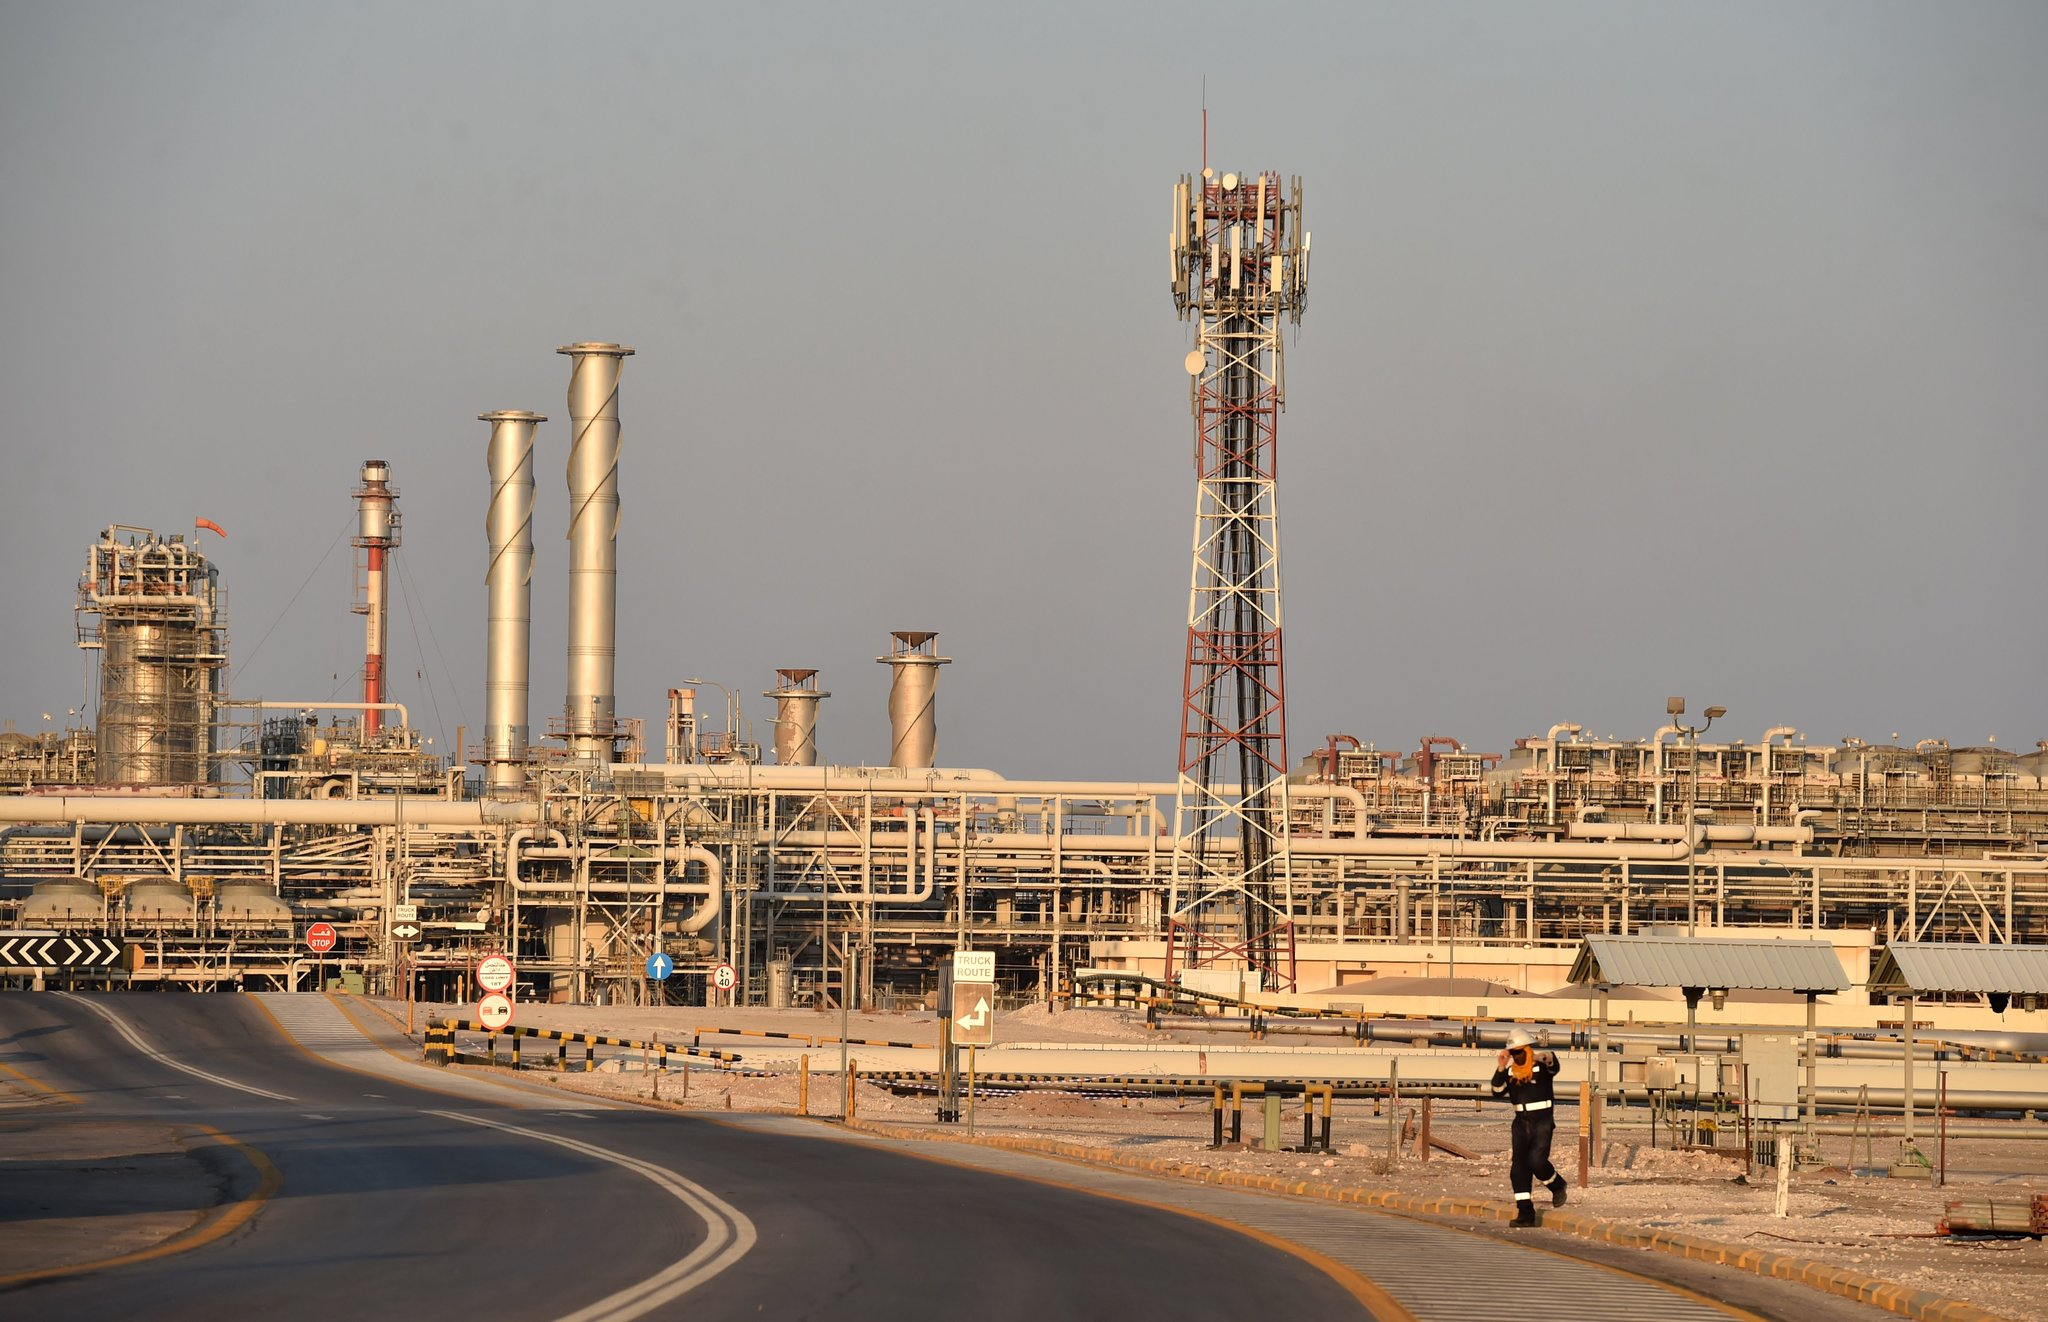 Oil giant, Saudi Arabia, records $29bn deficit in Q2 as oil demand continues to fall